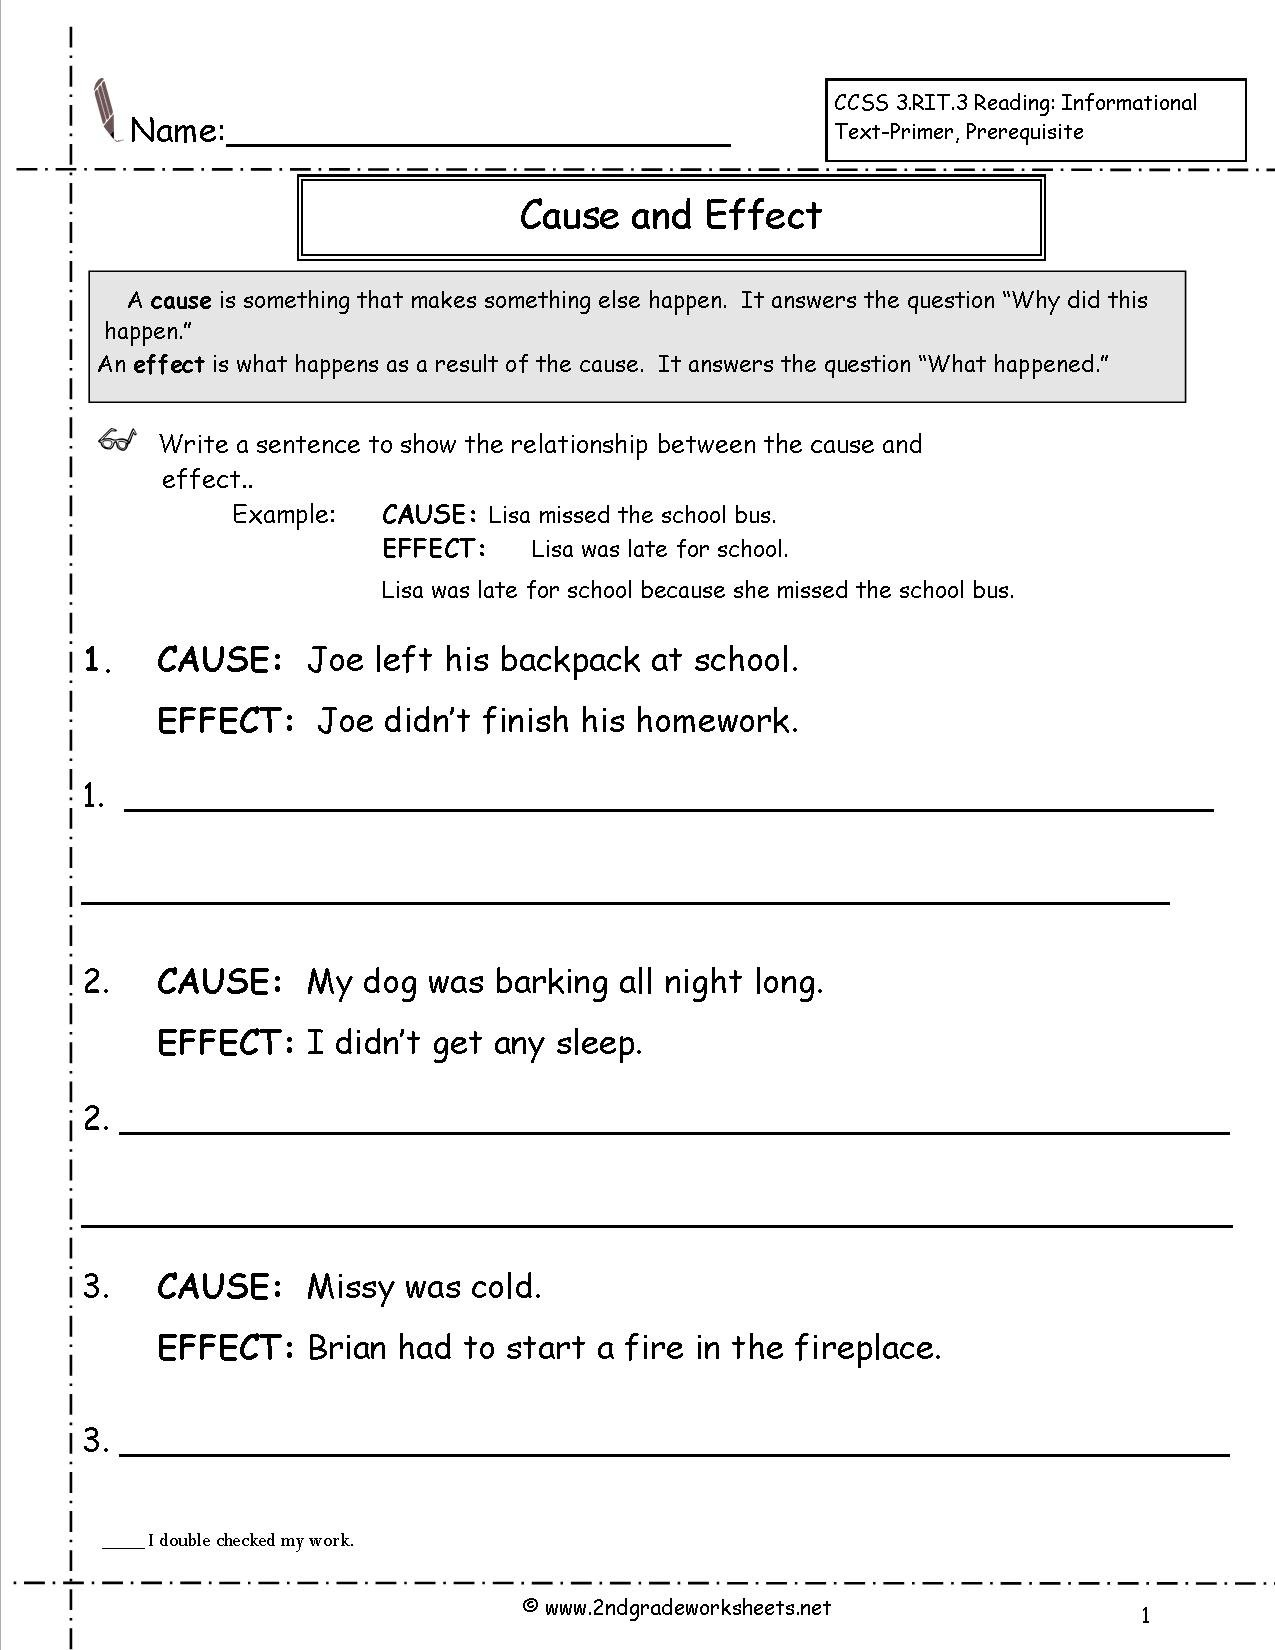 Cause And Effect Worksheets For Cause And Effect Worksheets 3Rd Grade